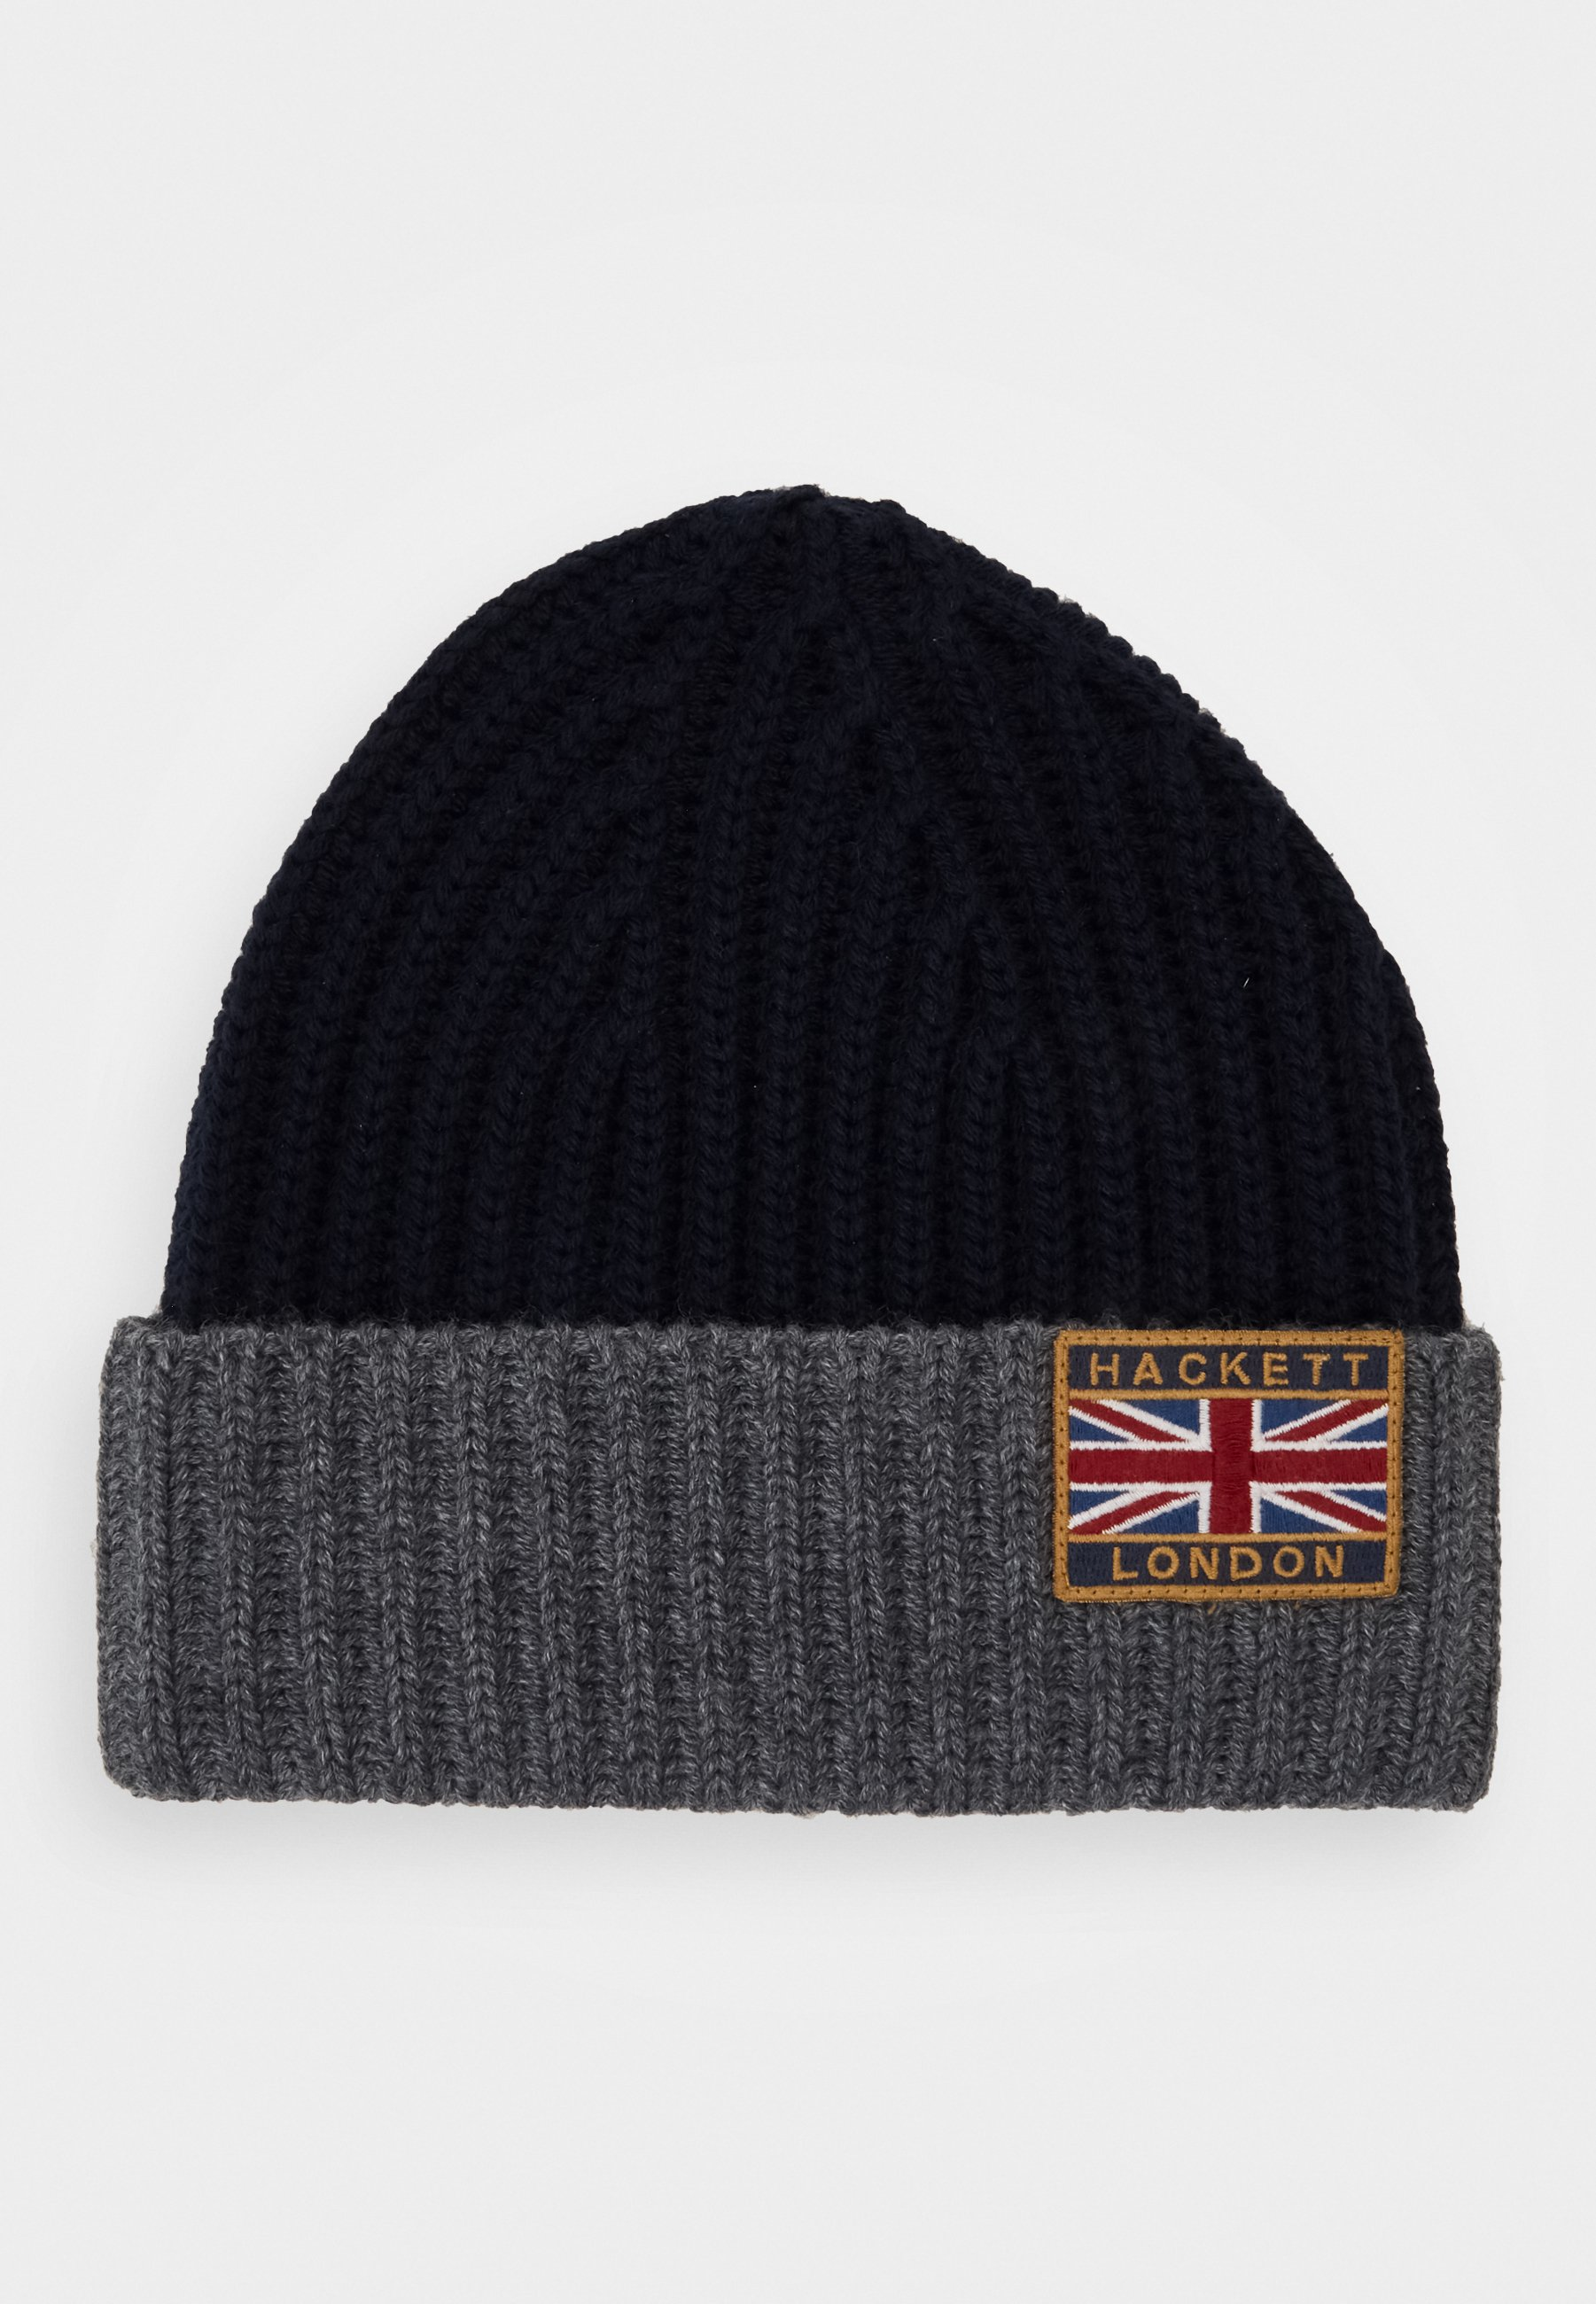 Hackett London Beanie - Mütze Navy/grey/dunkelblau